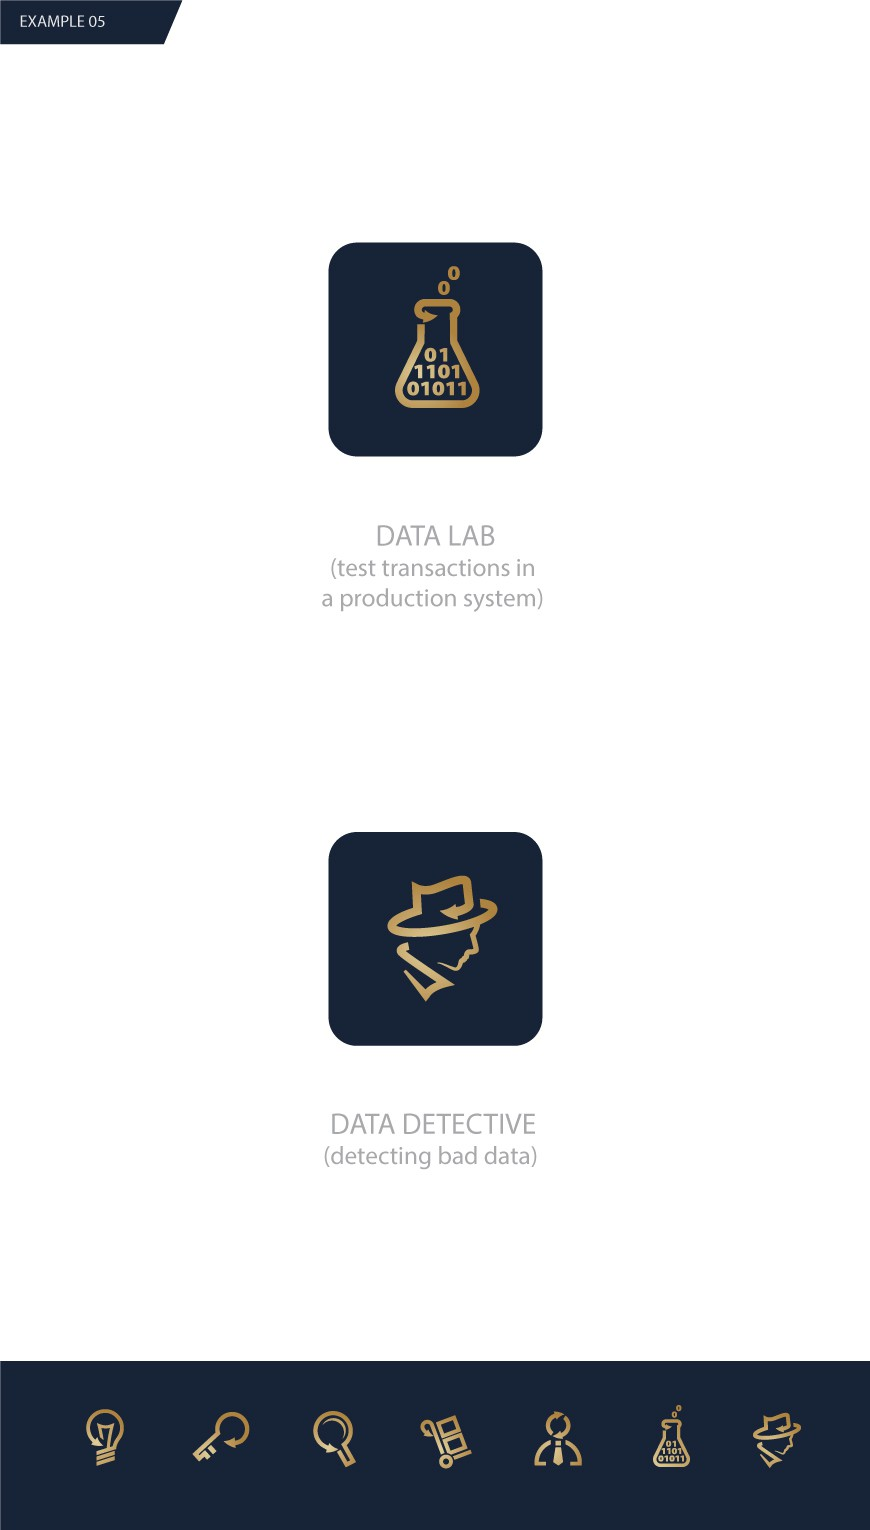 Centripetal Systems - 2 more icons with same branding and feel